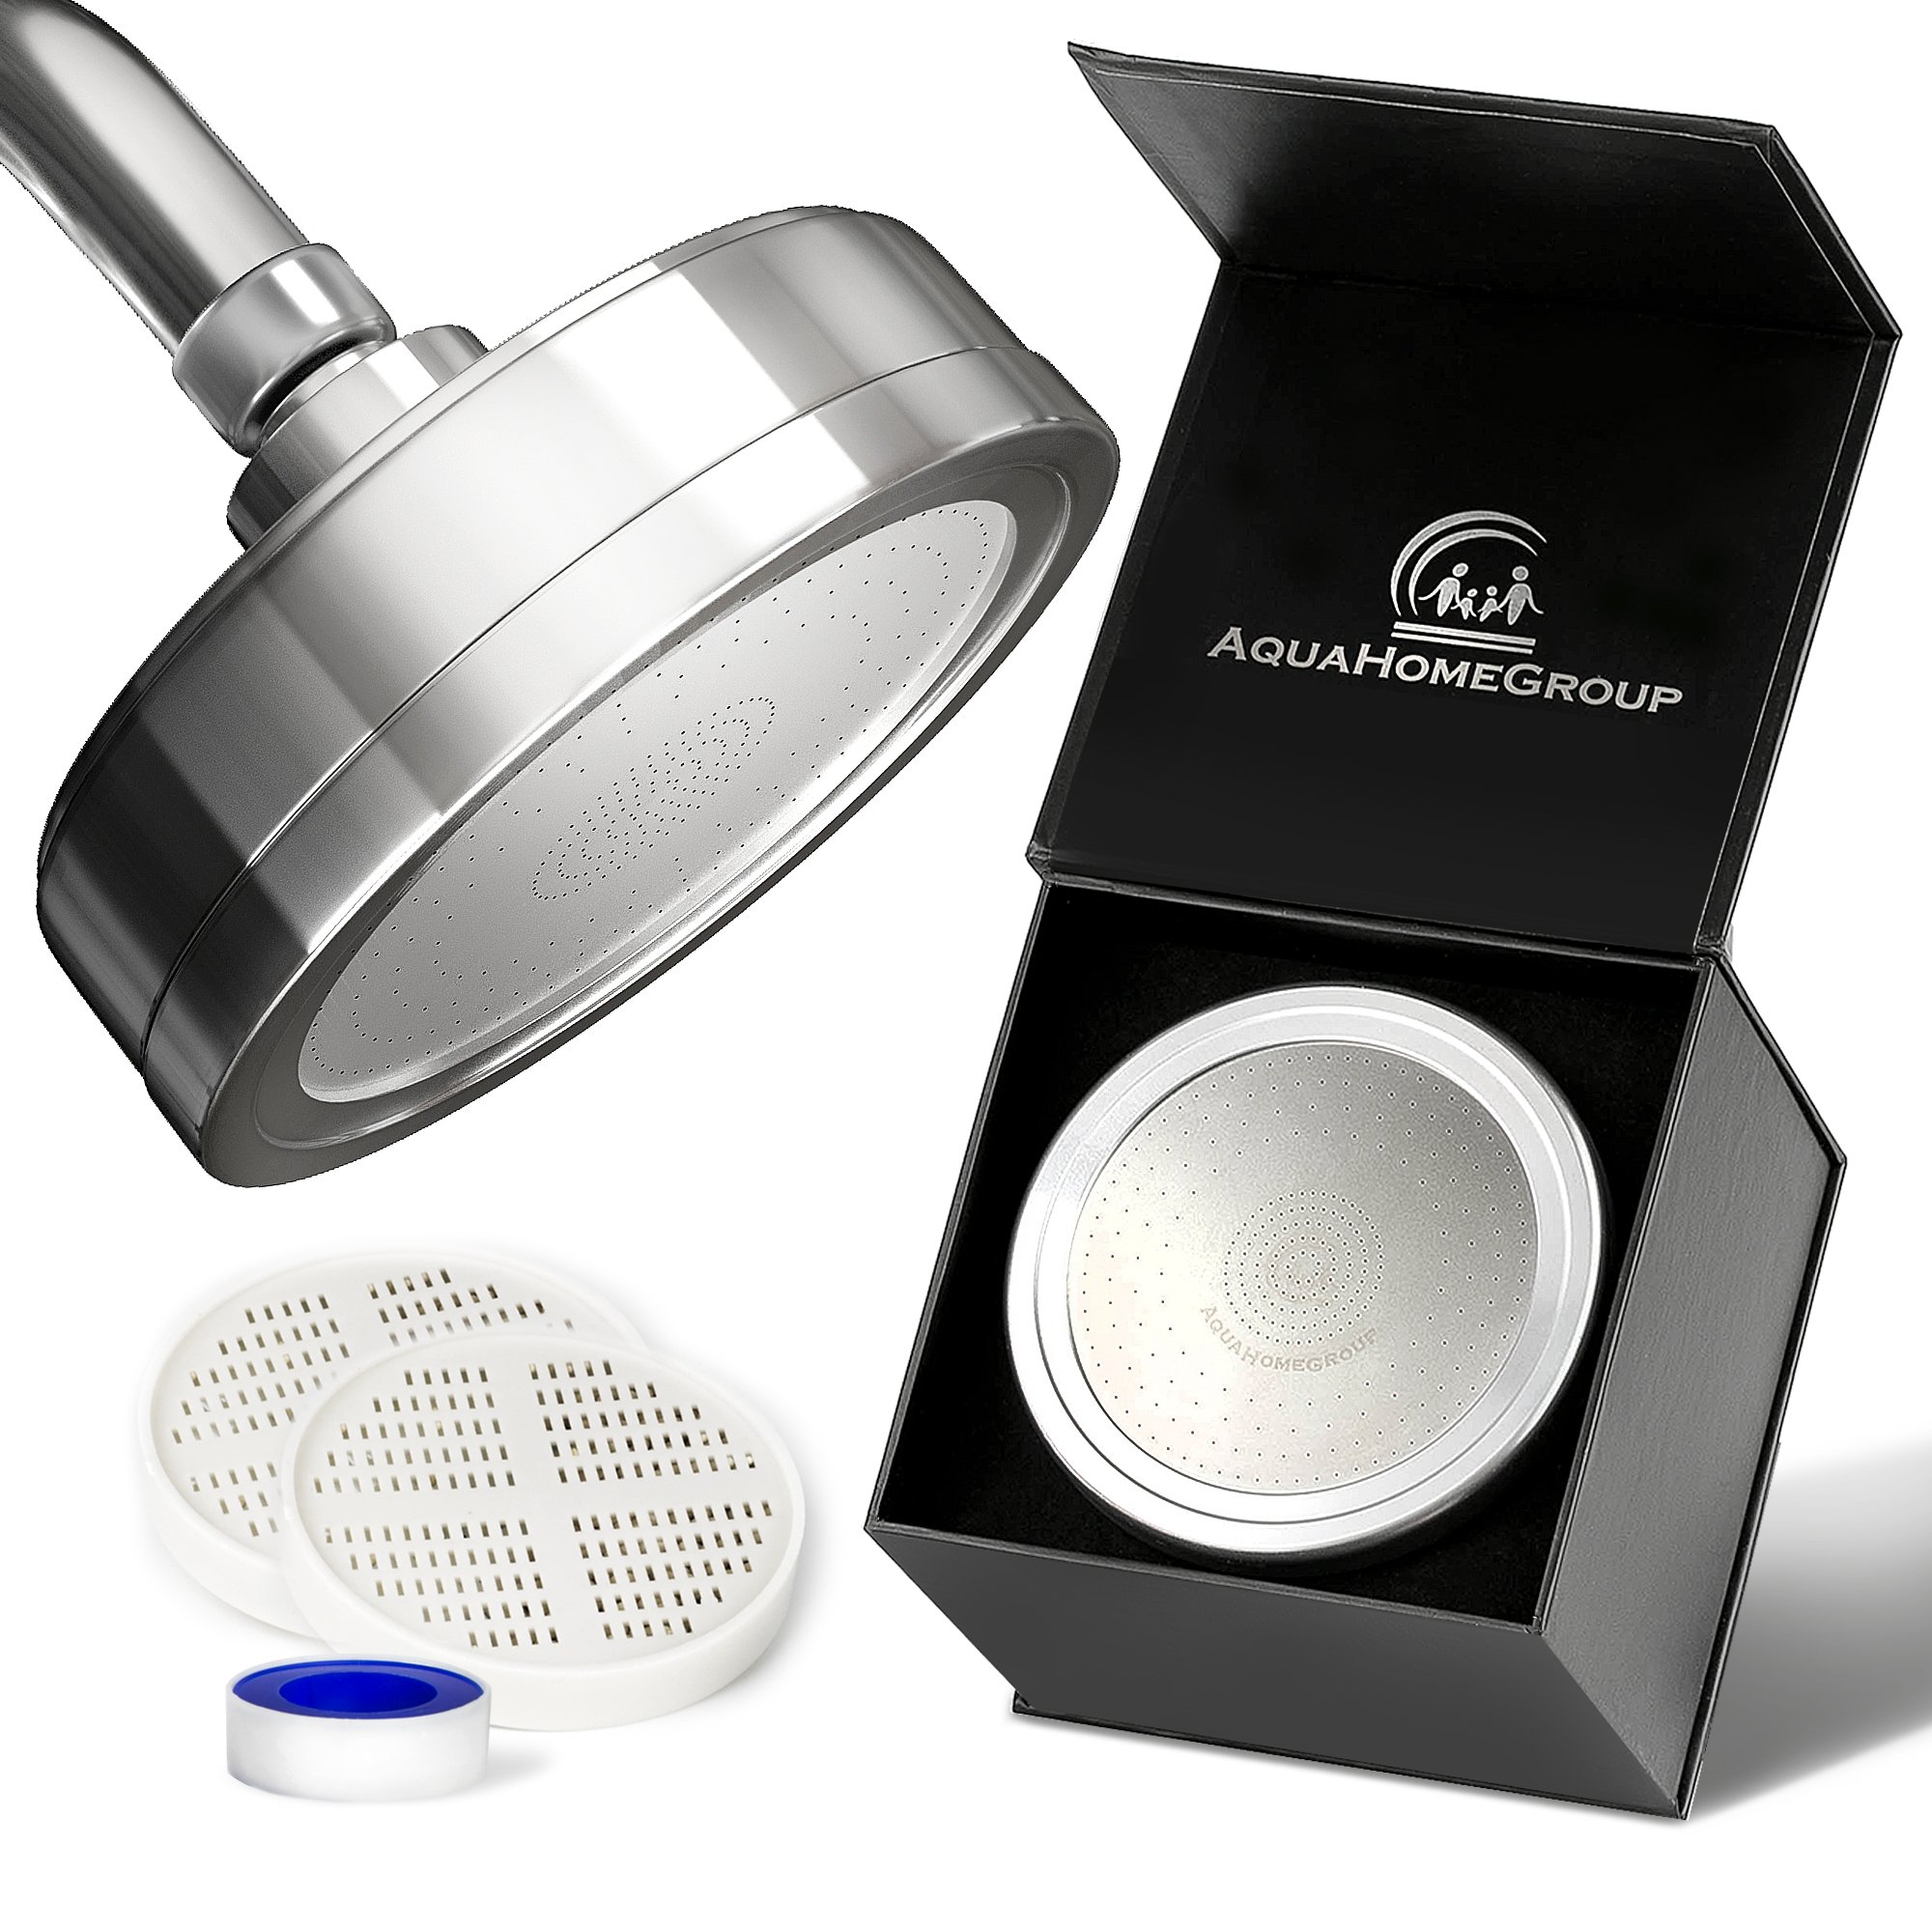 Luxury Filtered Shower Head (Metal) 2 Cartridges Vitamin C + 5 Shower Caps - Helps Dry Skin & Hair Loss - Removes Chlorine & Sediments - Consistent Water Pressure - Massage and SPA Effect